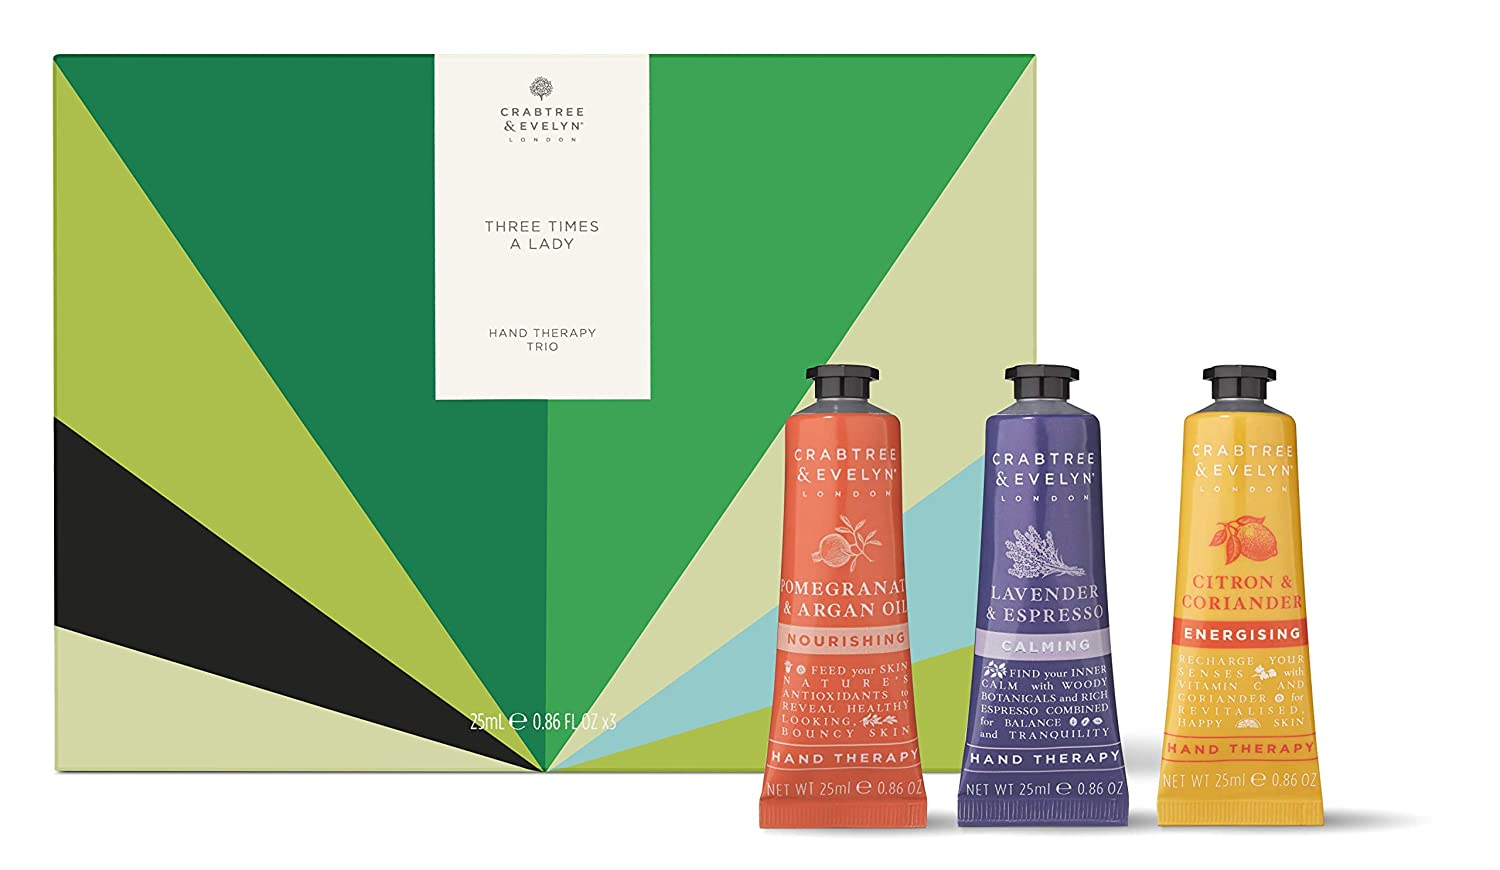 Amazon.com: Crabtree & Evelyn Three Times A Lady Hand ...